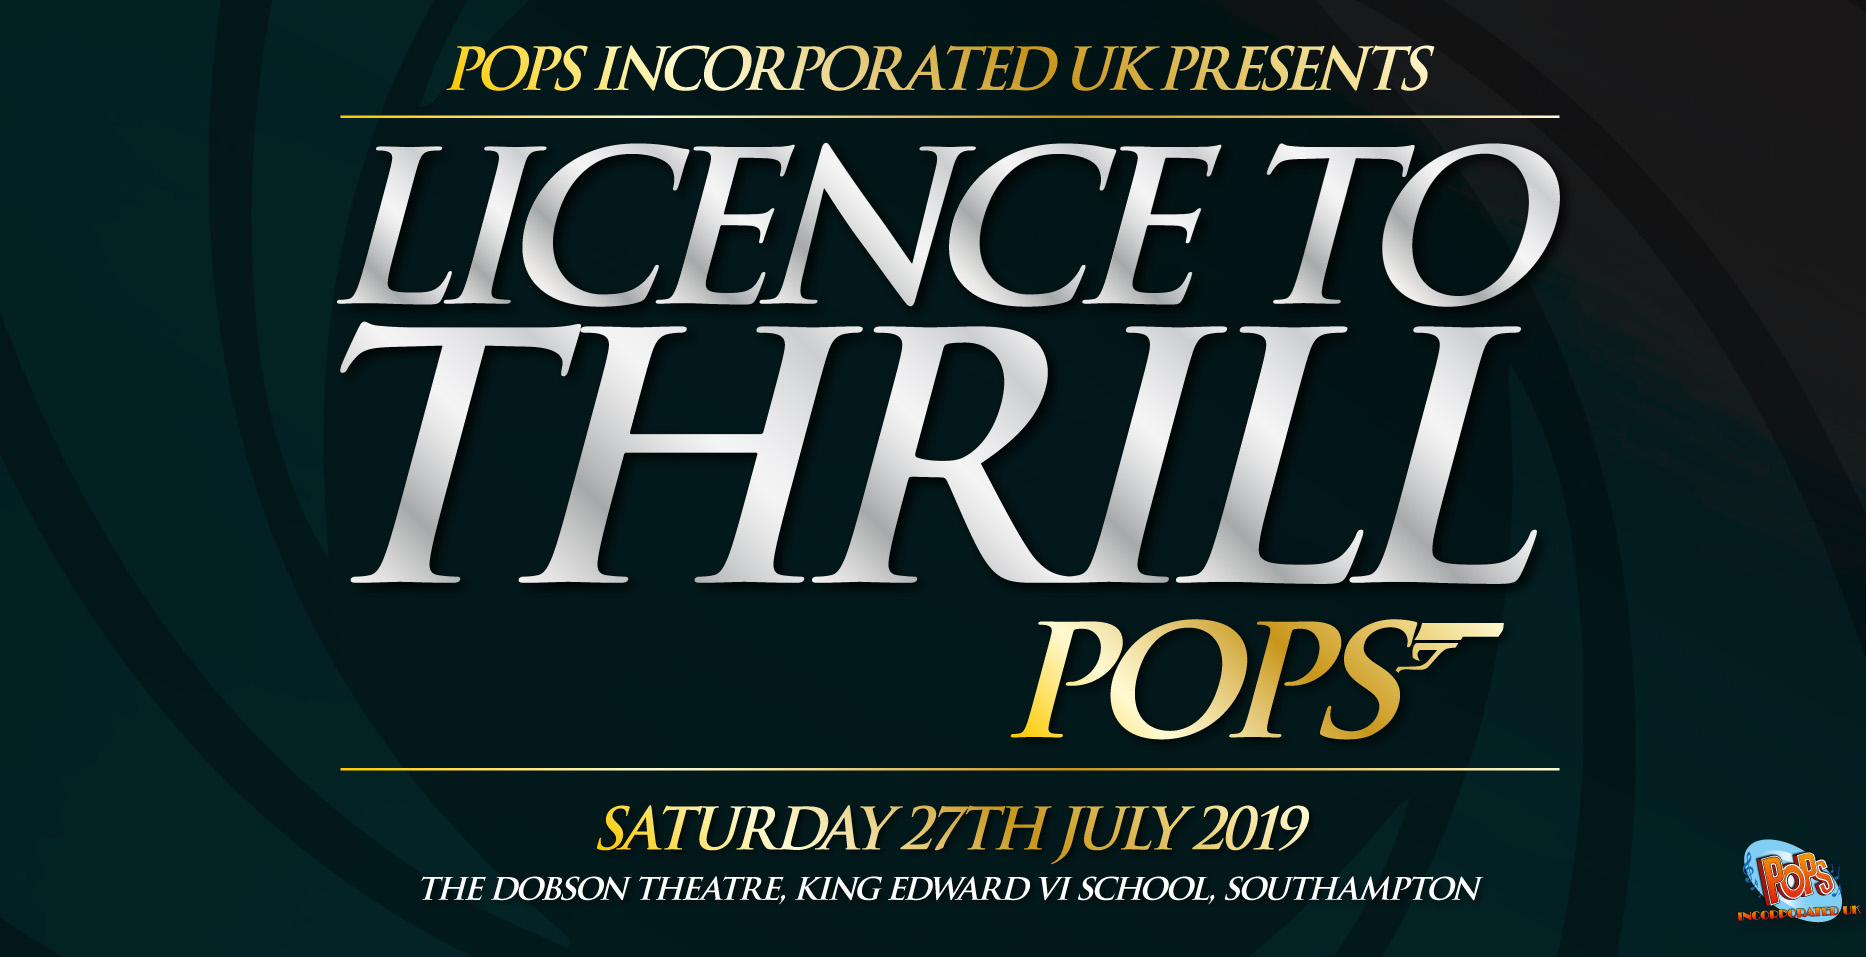 POPs Orchestra - Licence to Thrill 007 banner image